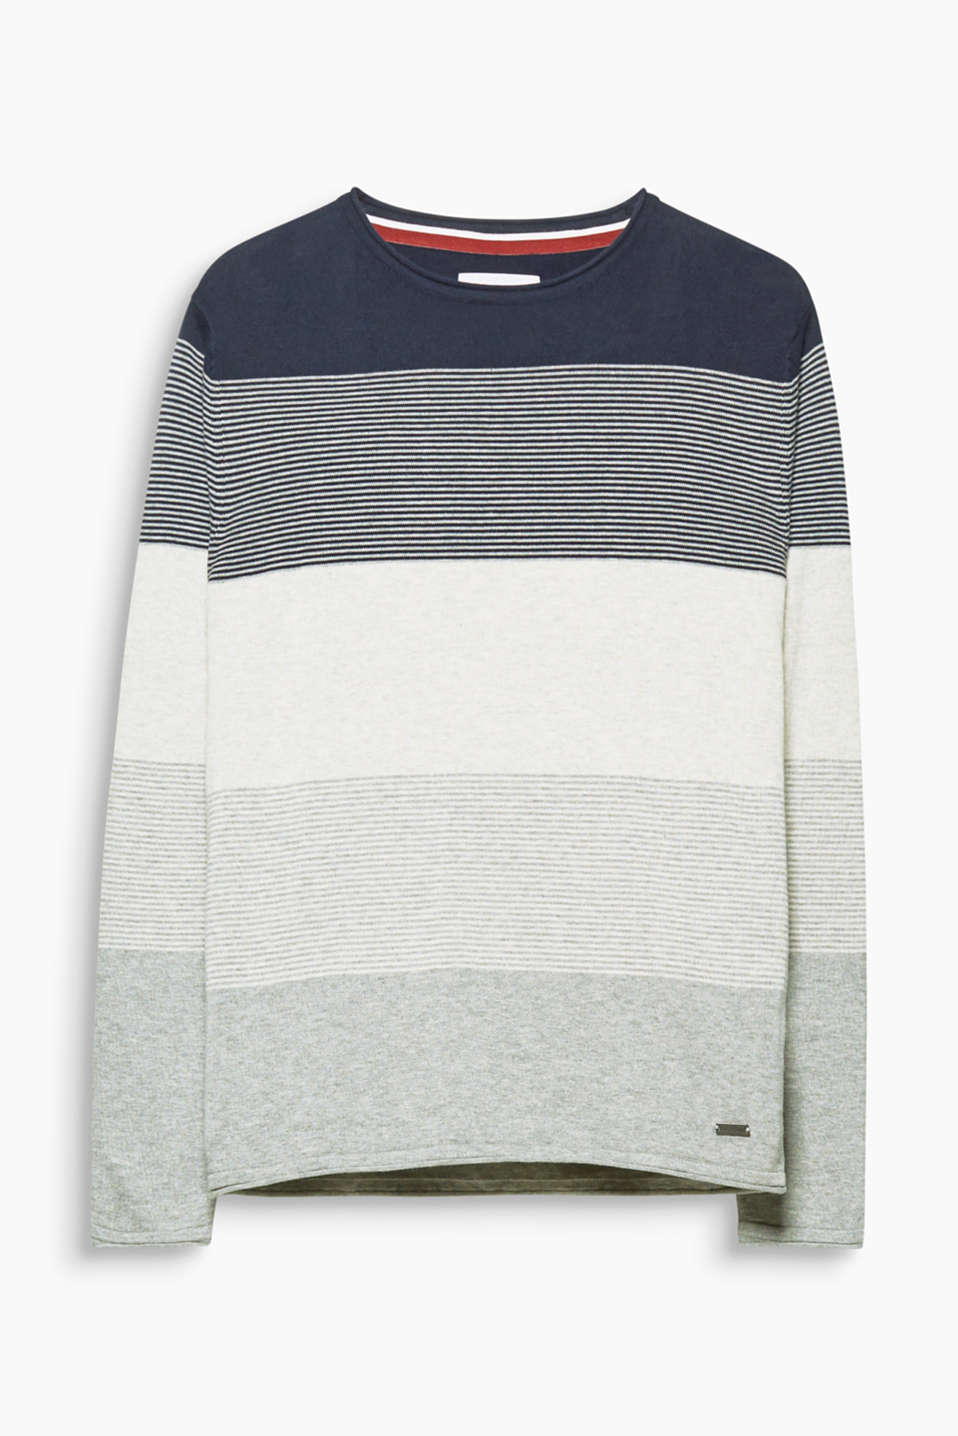 A cool stripe mix: This jumper is made of heavy jersey and features block stripes with different textures.